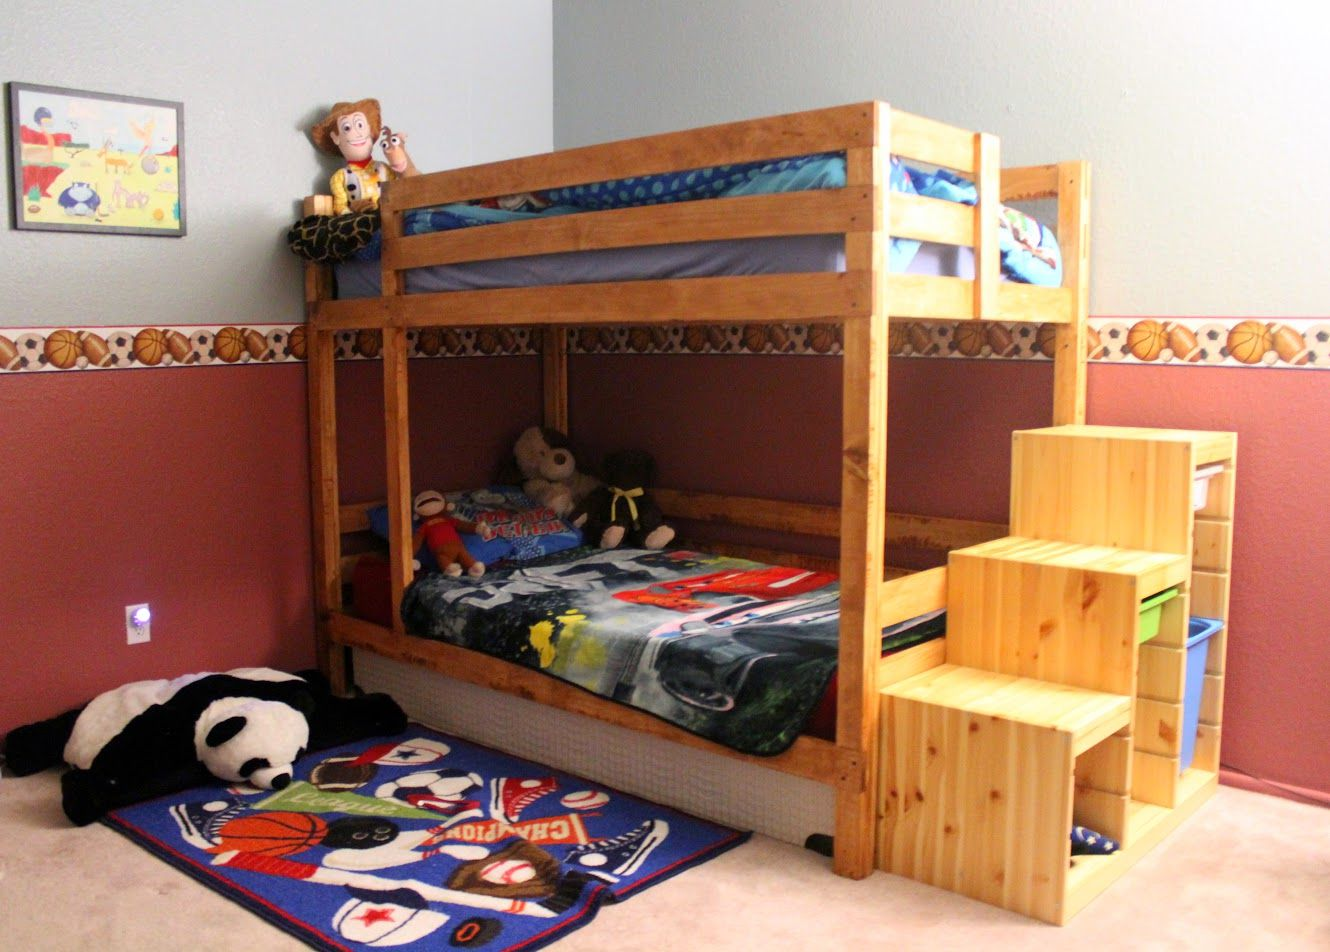 9 free bunk bed plans you can diy this weekend - Enclosed Bed Frame